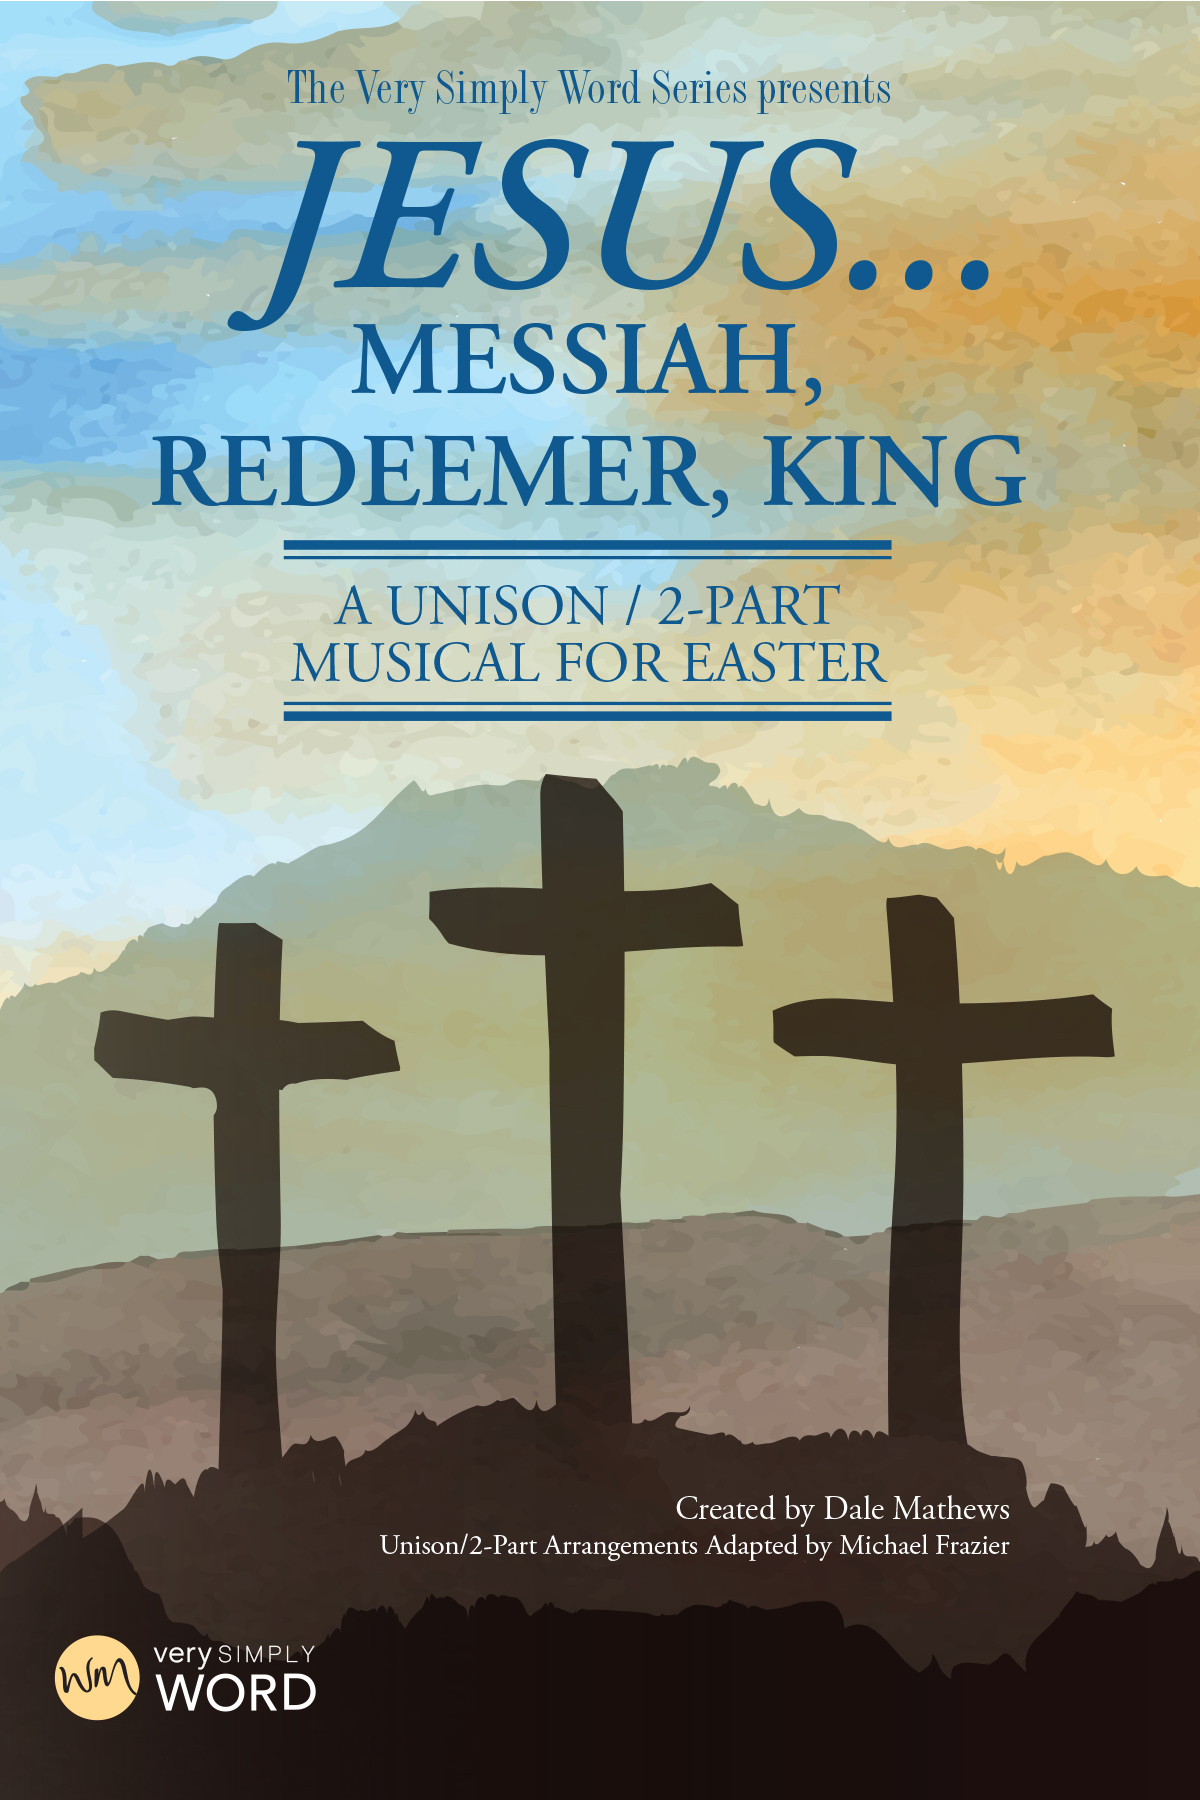 Jesus...Messiah, Redeemer, King